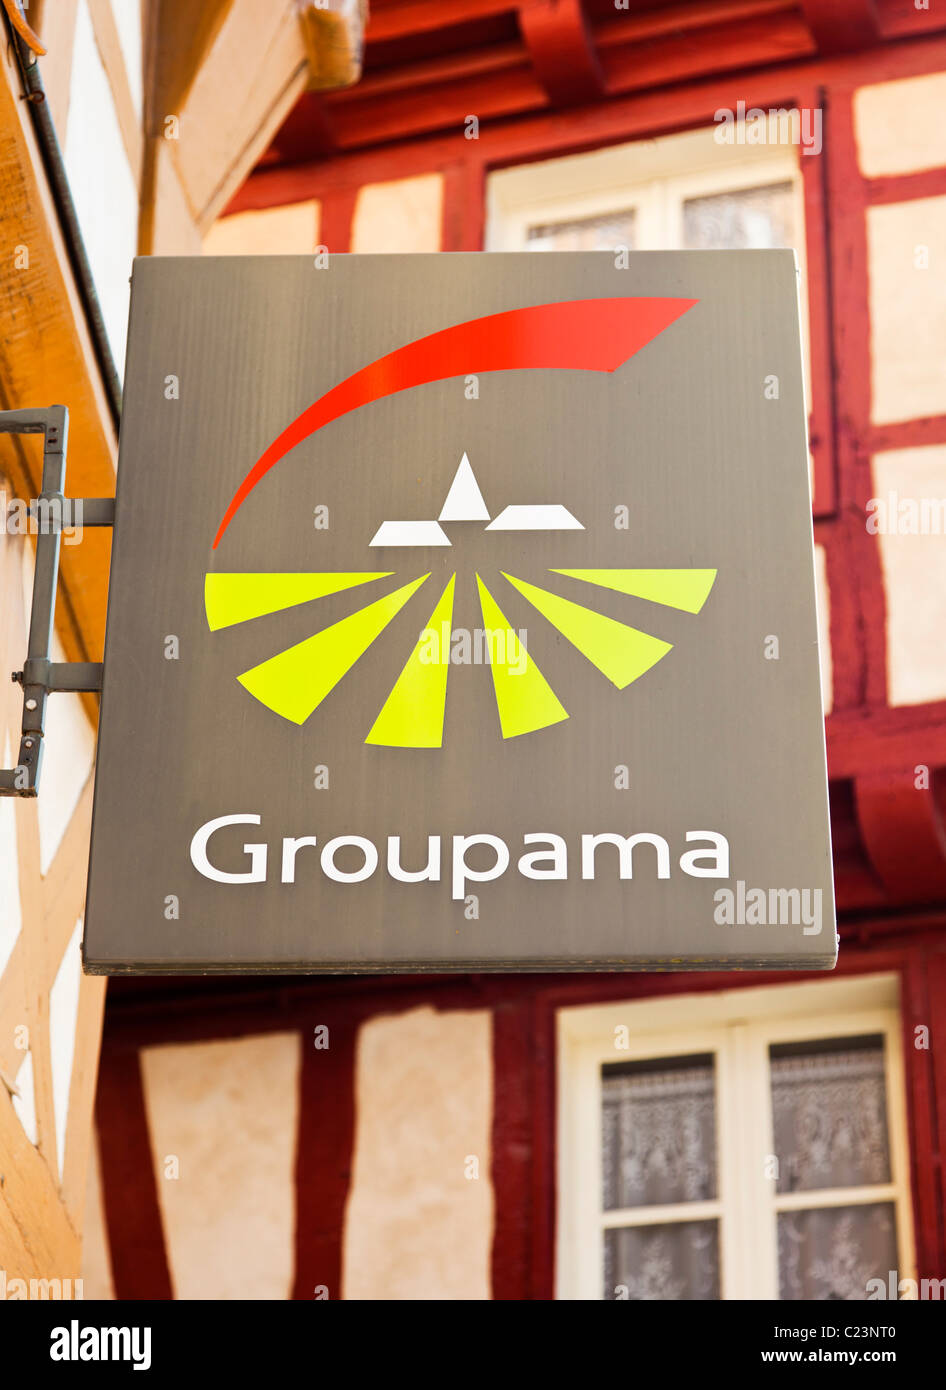 Groupama insurance company sign, France, Europe - Stock Image